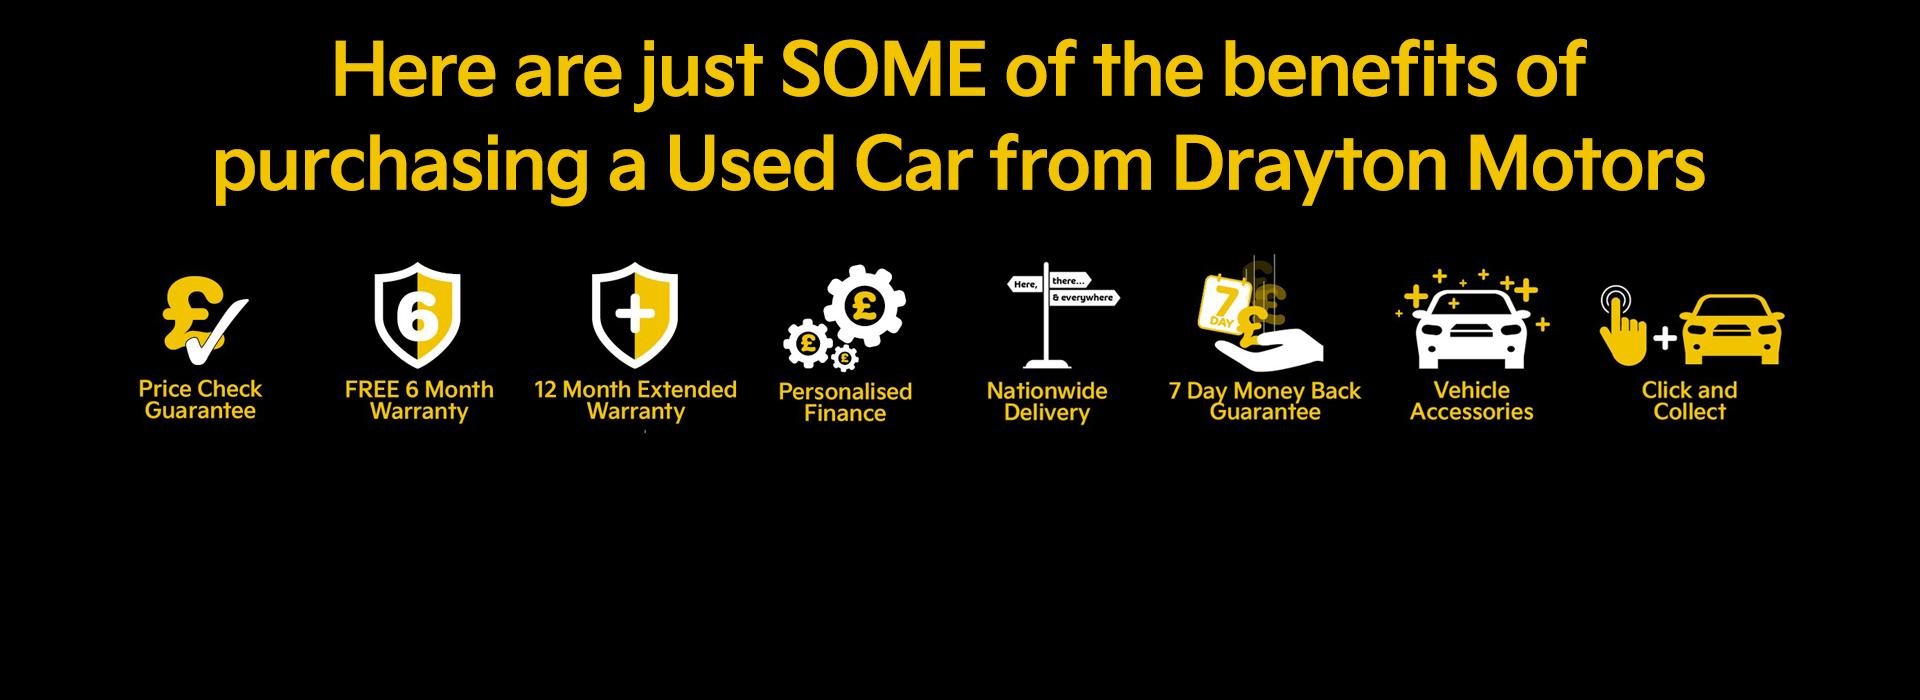 A few reasons why to buy a Used car from Drayton Motors